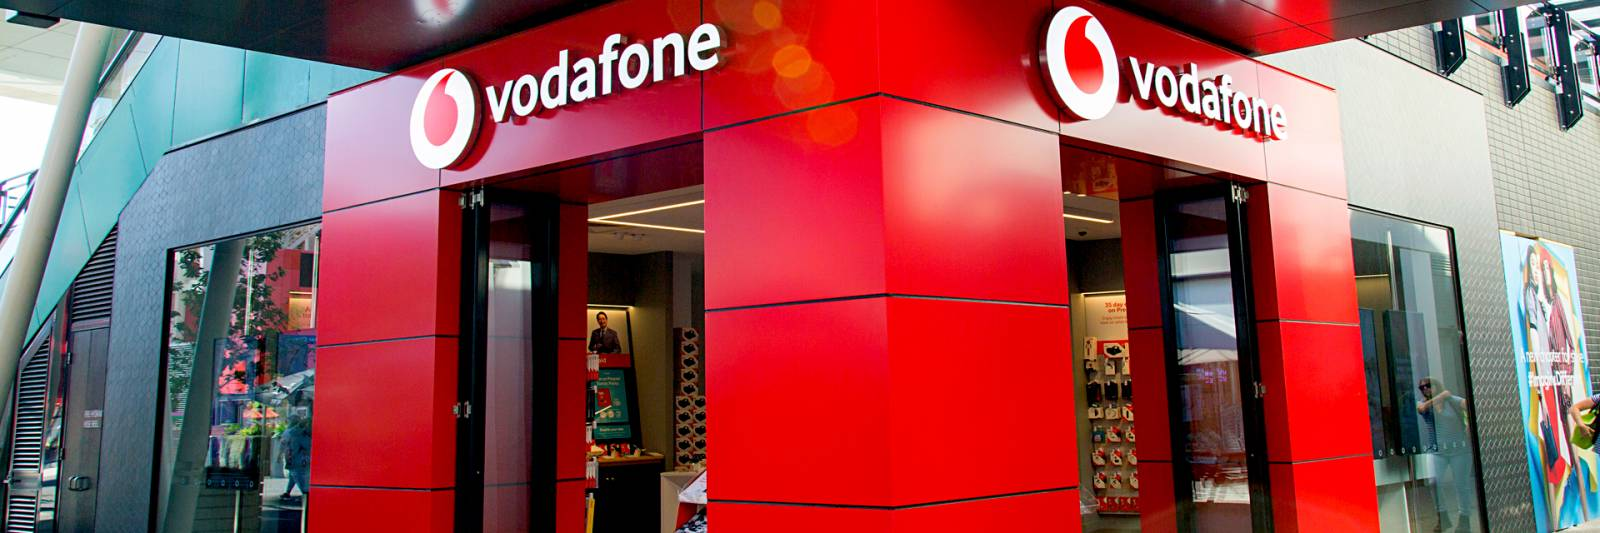 vodafone spain fined £7 million for repeated gdpr breaches